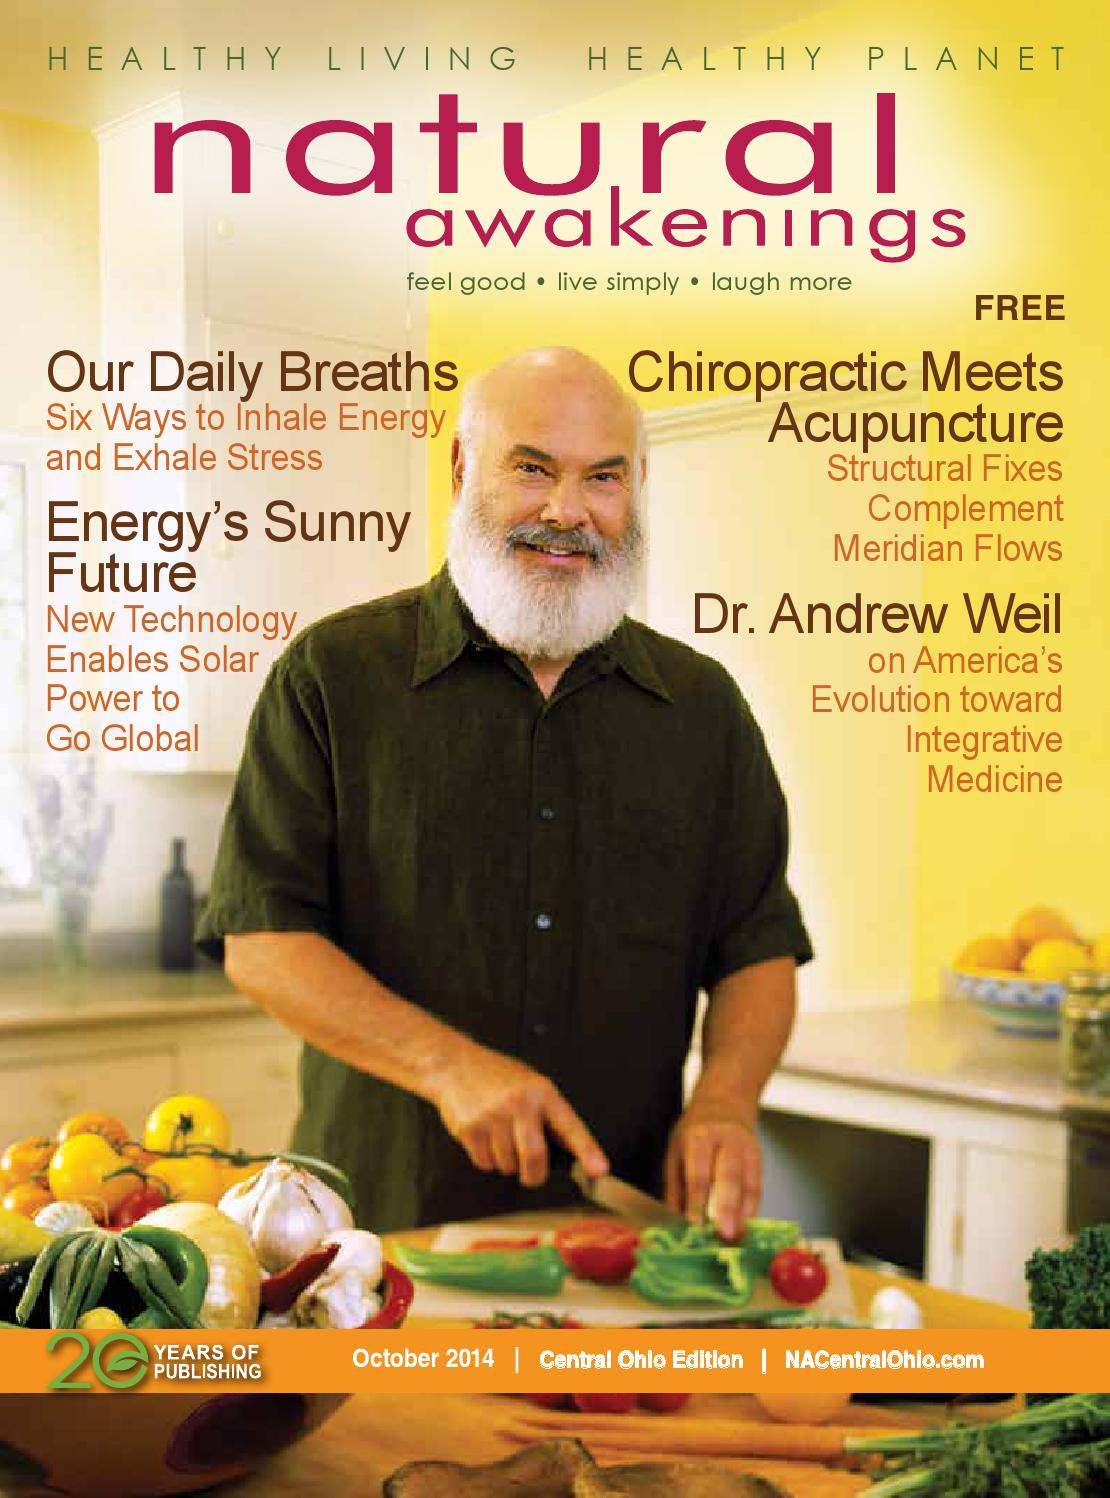 Natural Awakenings of Central Ohio - October 2014 issue by NA